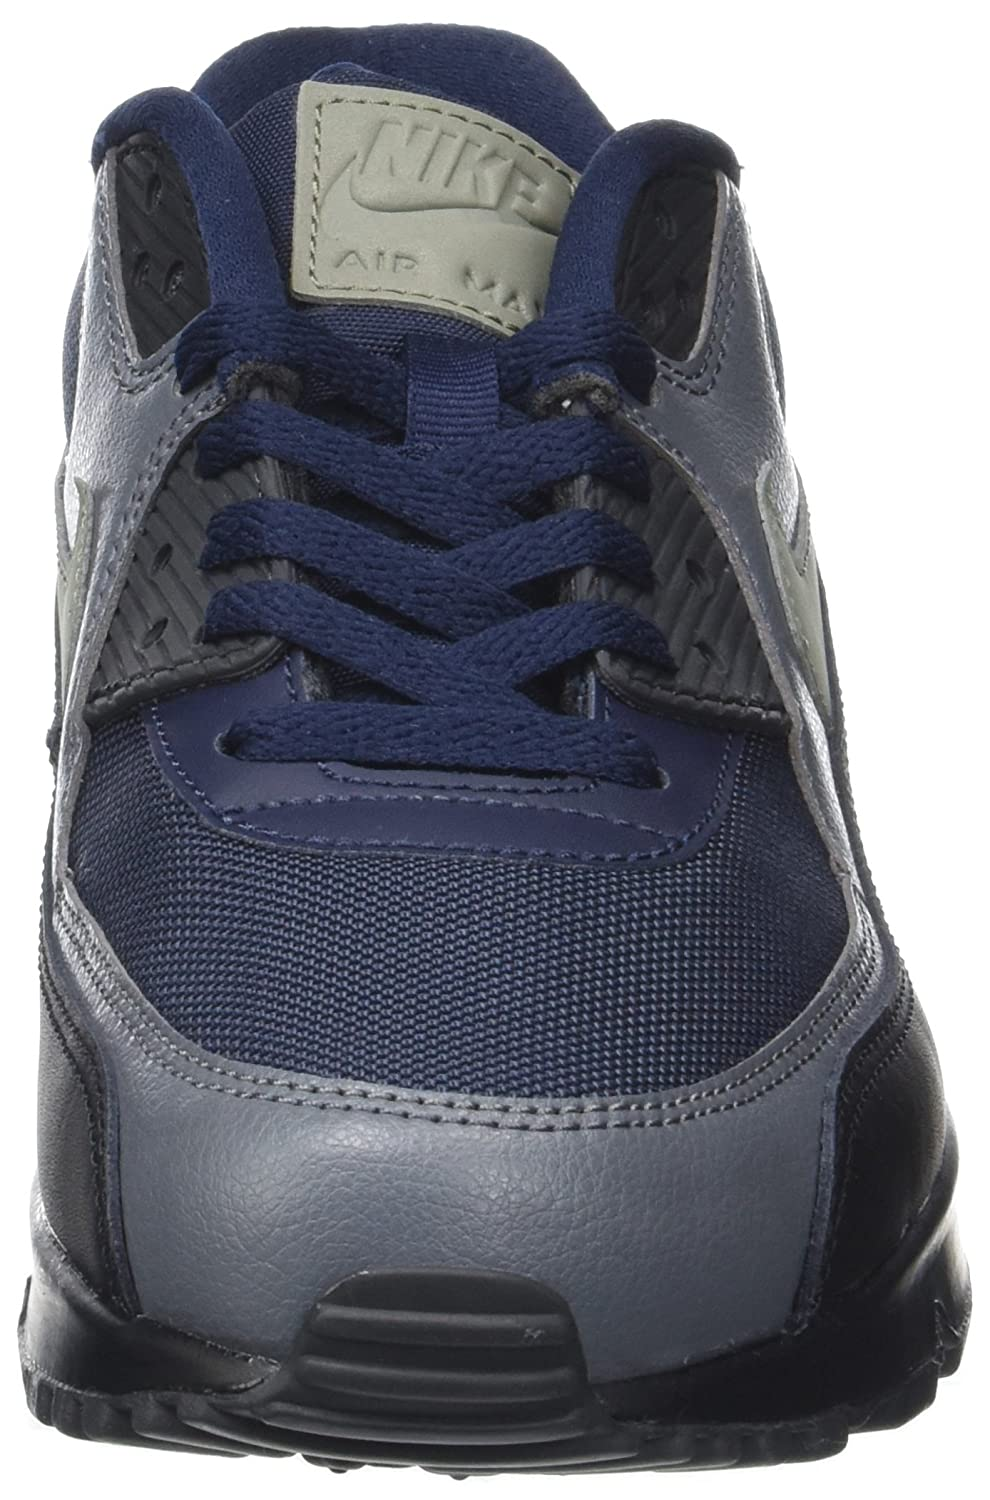 outlet store 8d71e eca4e Amazon.com   Nike Men s Air Max 90 Essential Low-Top Sneakers   Road Running